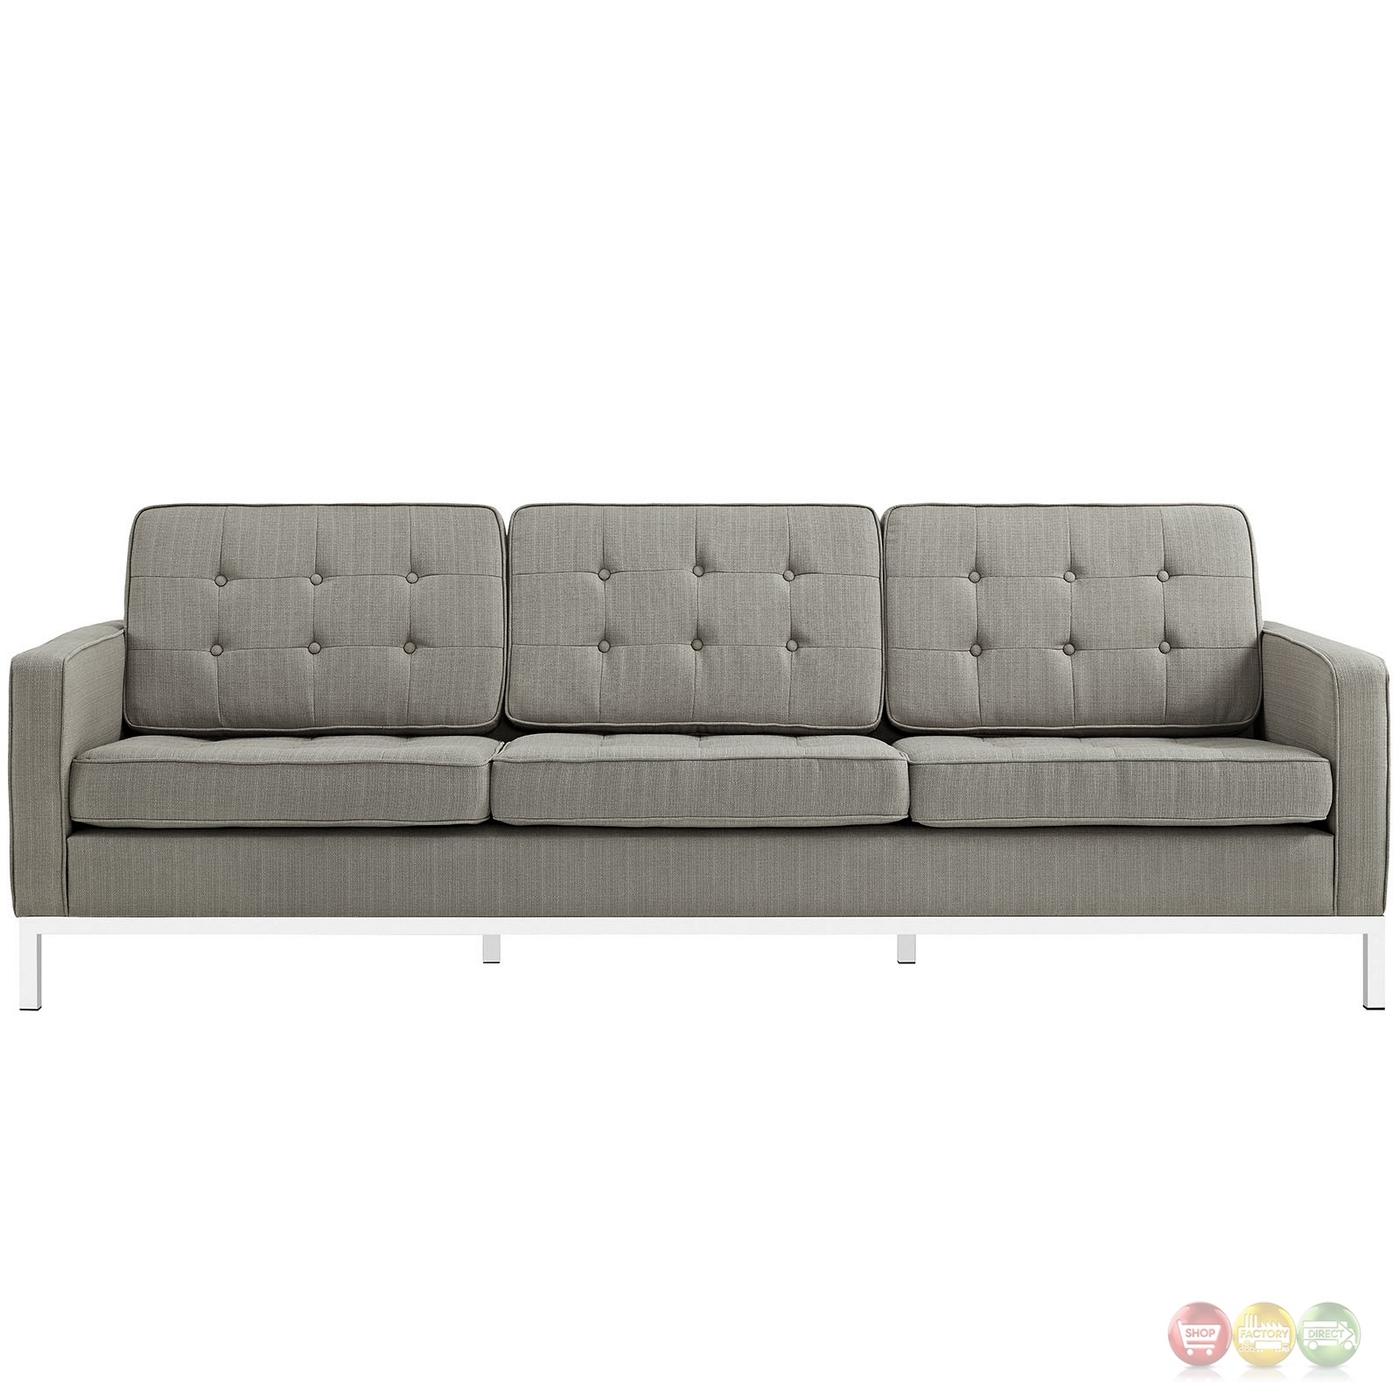 Loft Modern 2pc Upholstered Button Tufted Sofa Loveseat Set Granite